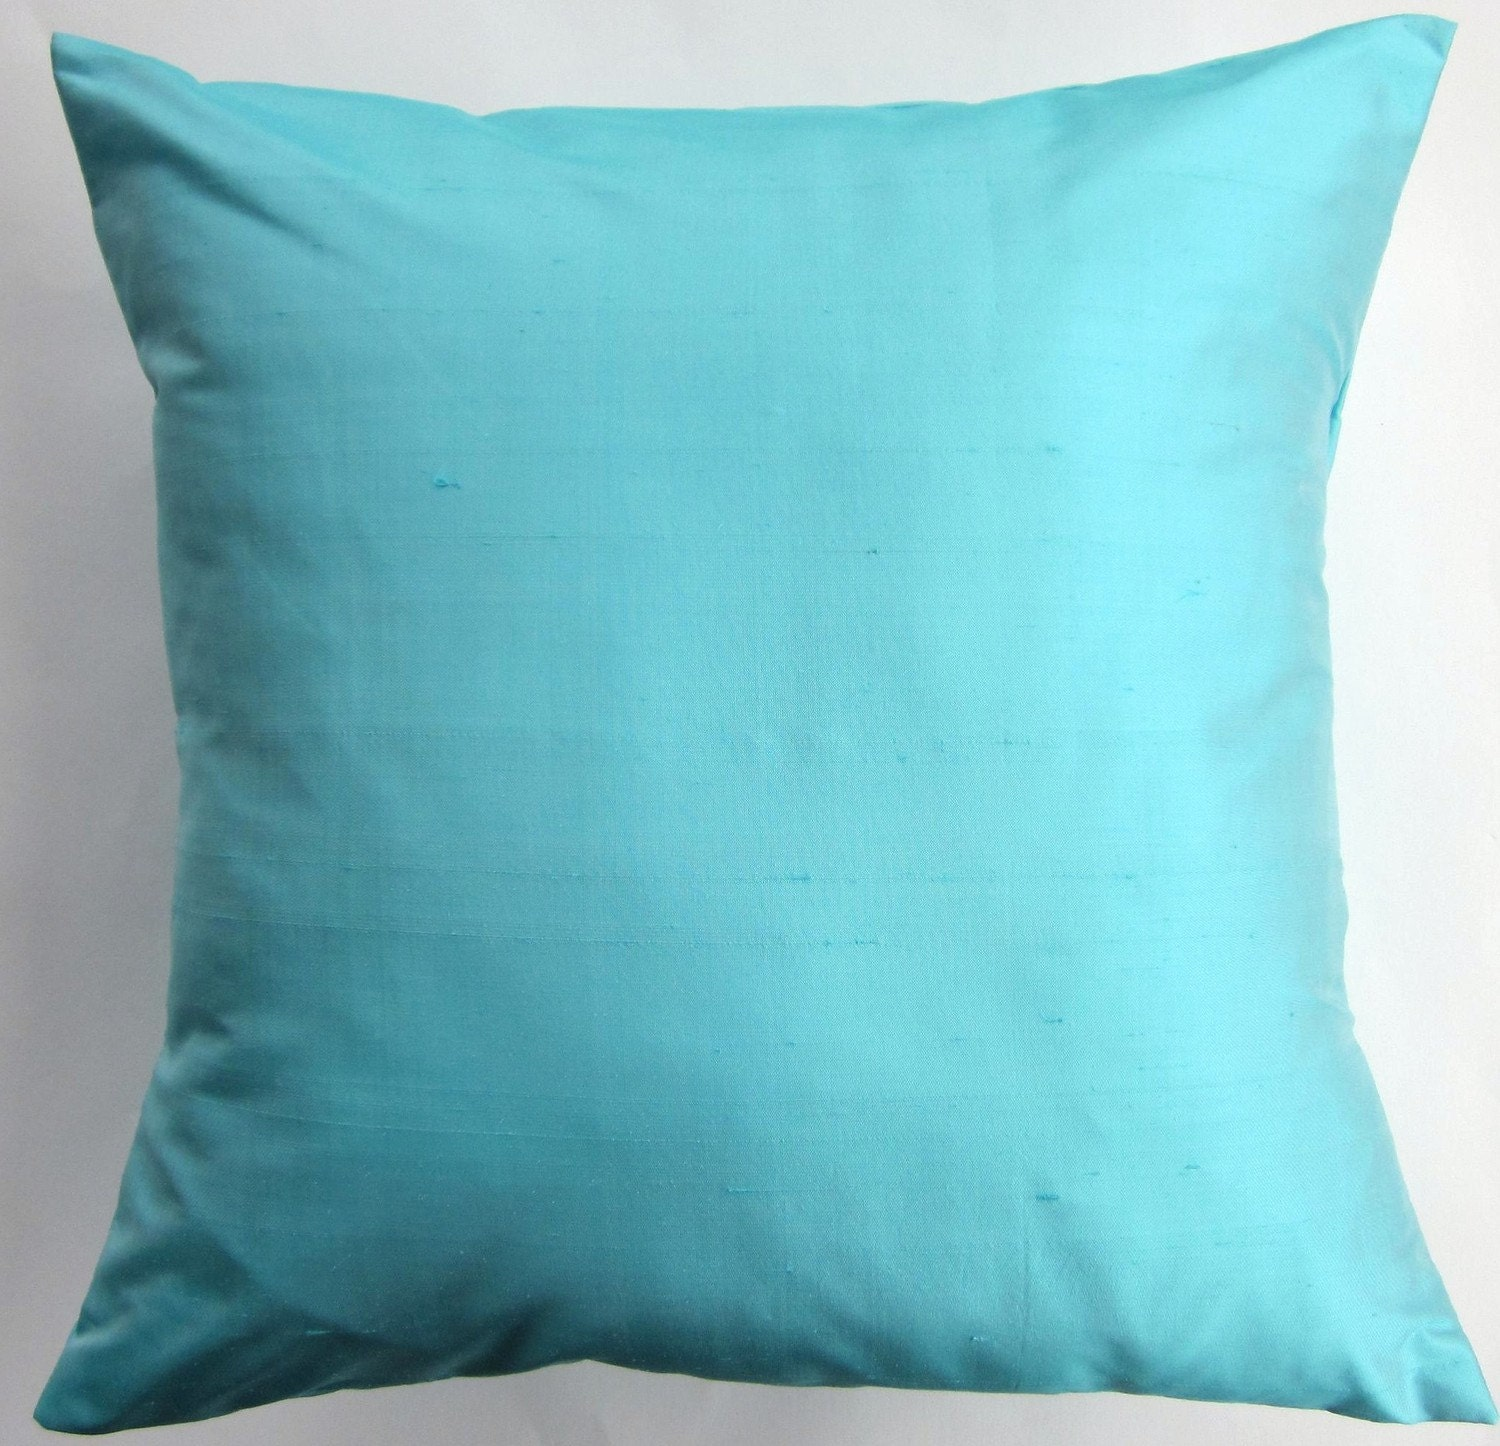 Decorative Pillows In Turquoise : Light Turquoise Silk Pillow Cover Aqua Throw Pillow Cover